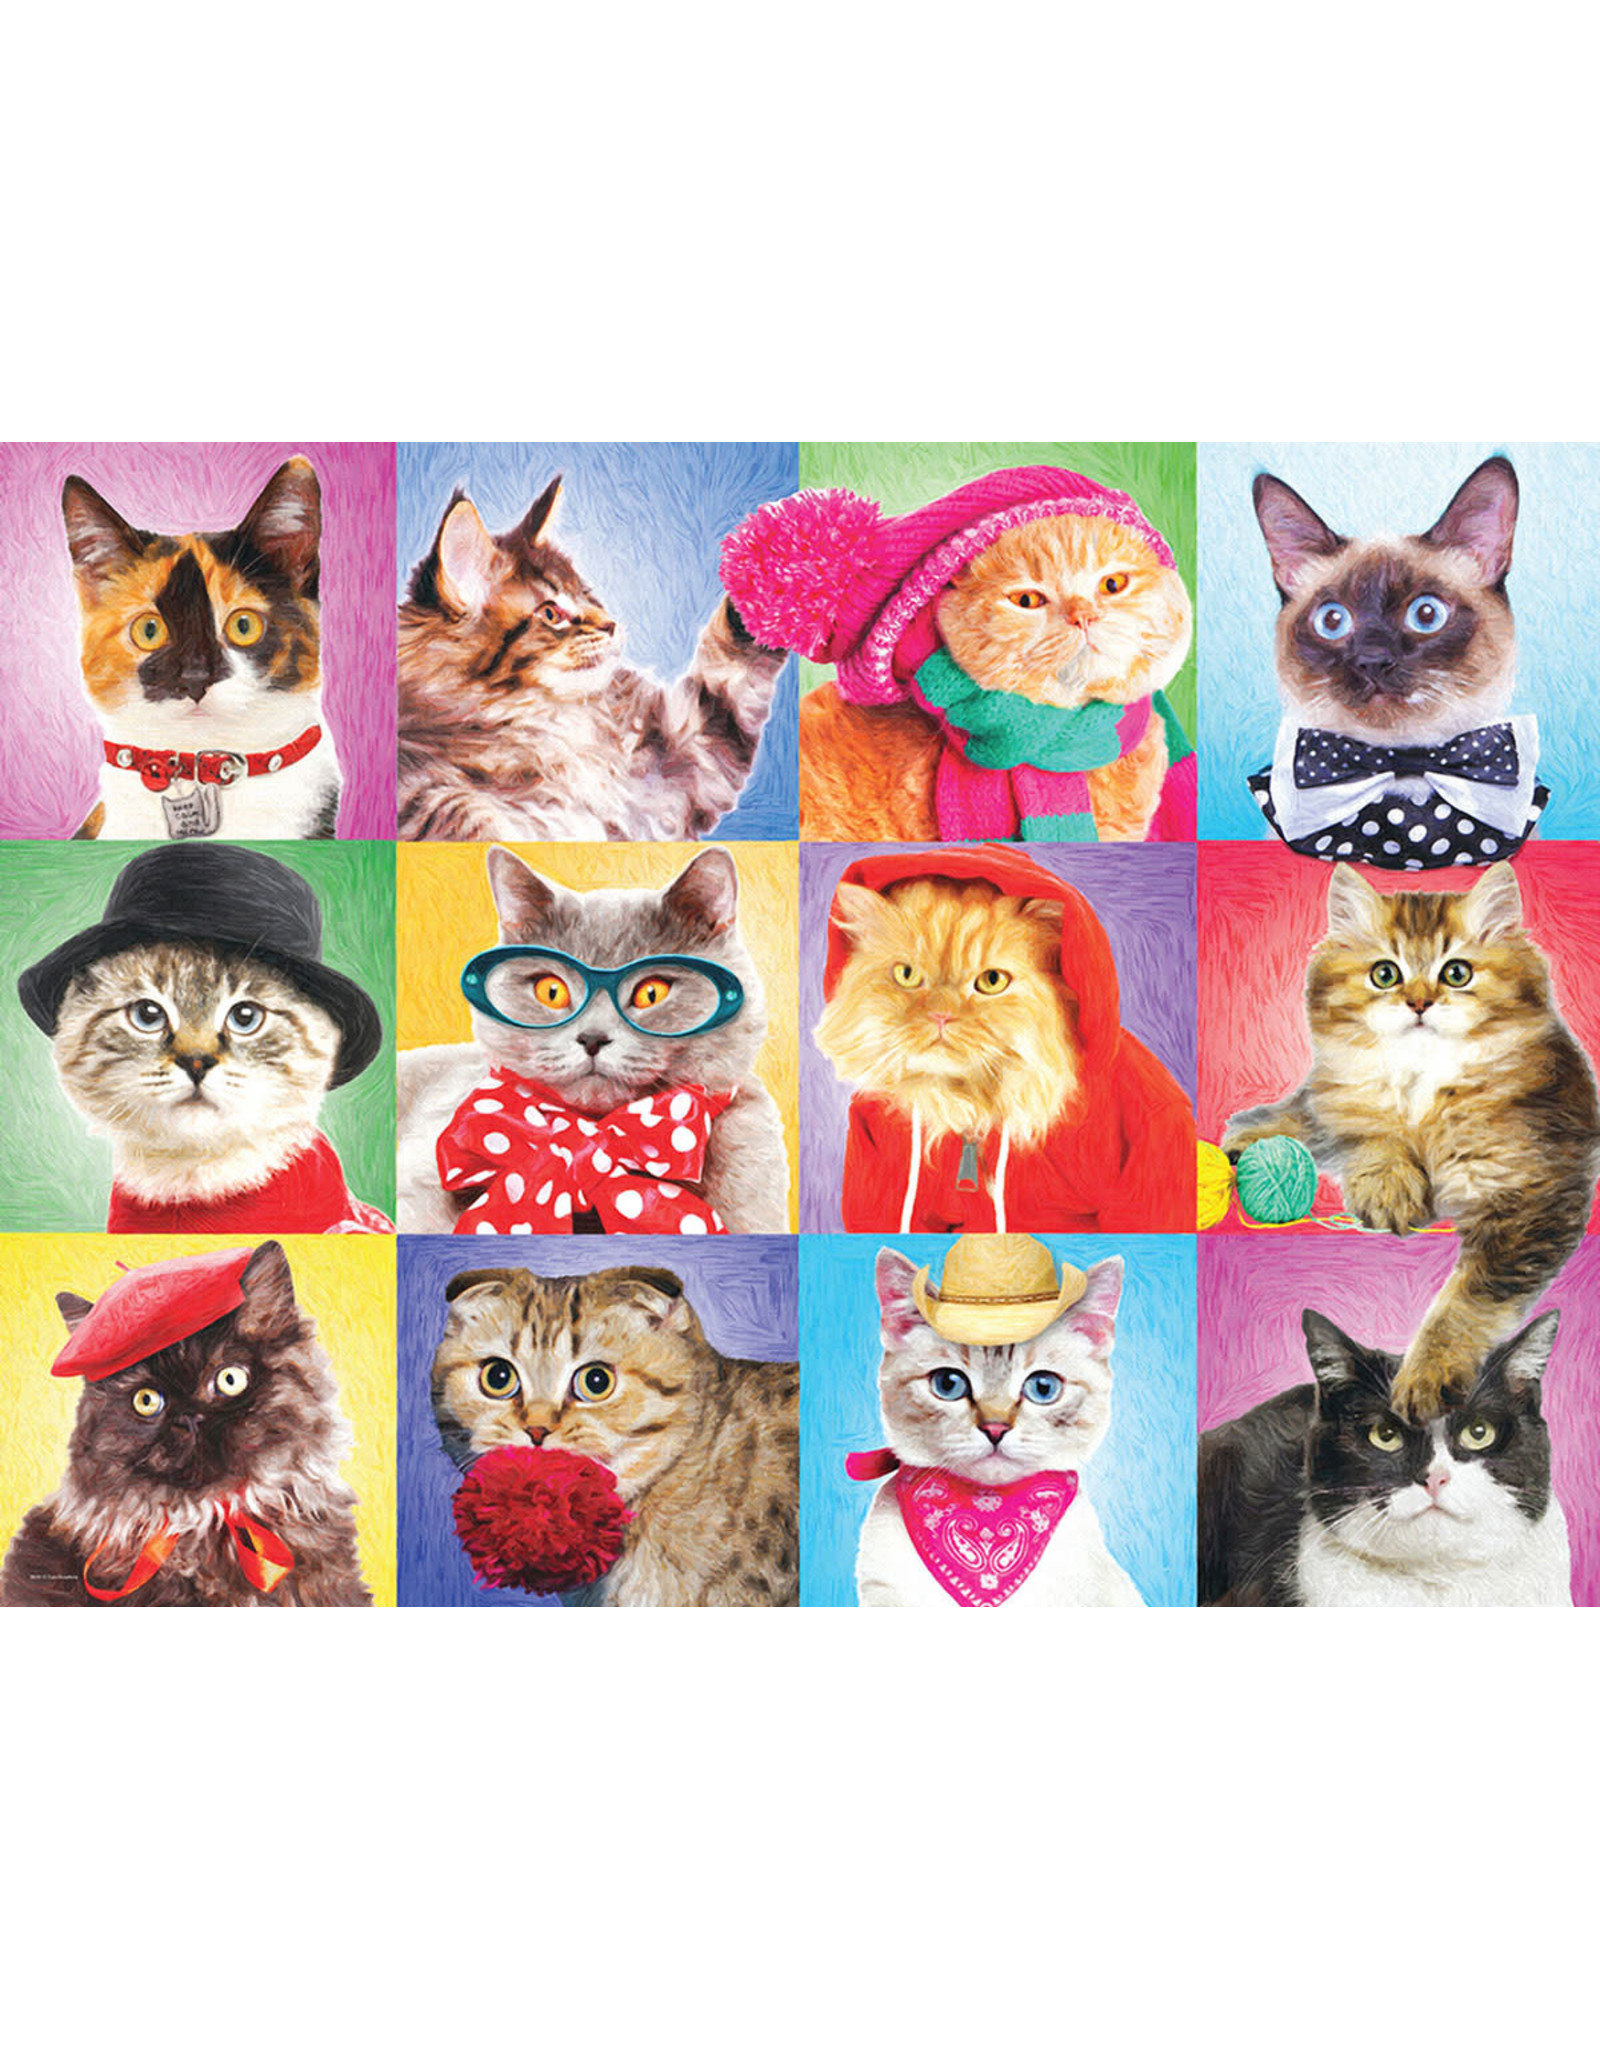 """Eurographics """"Silly Cats"""" 300 Piece Puzzle"""